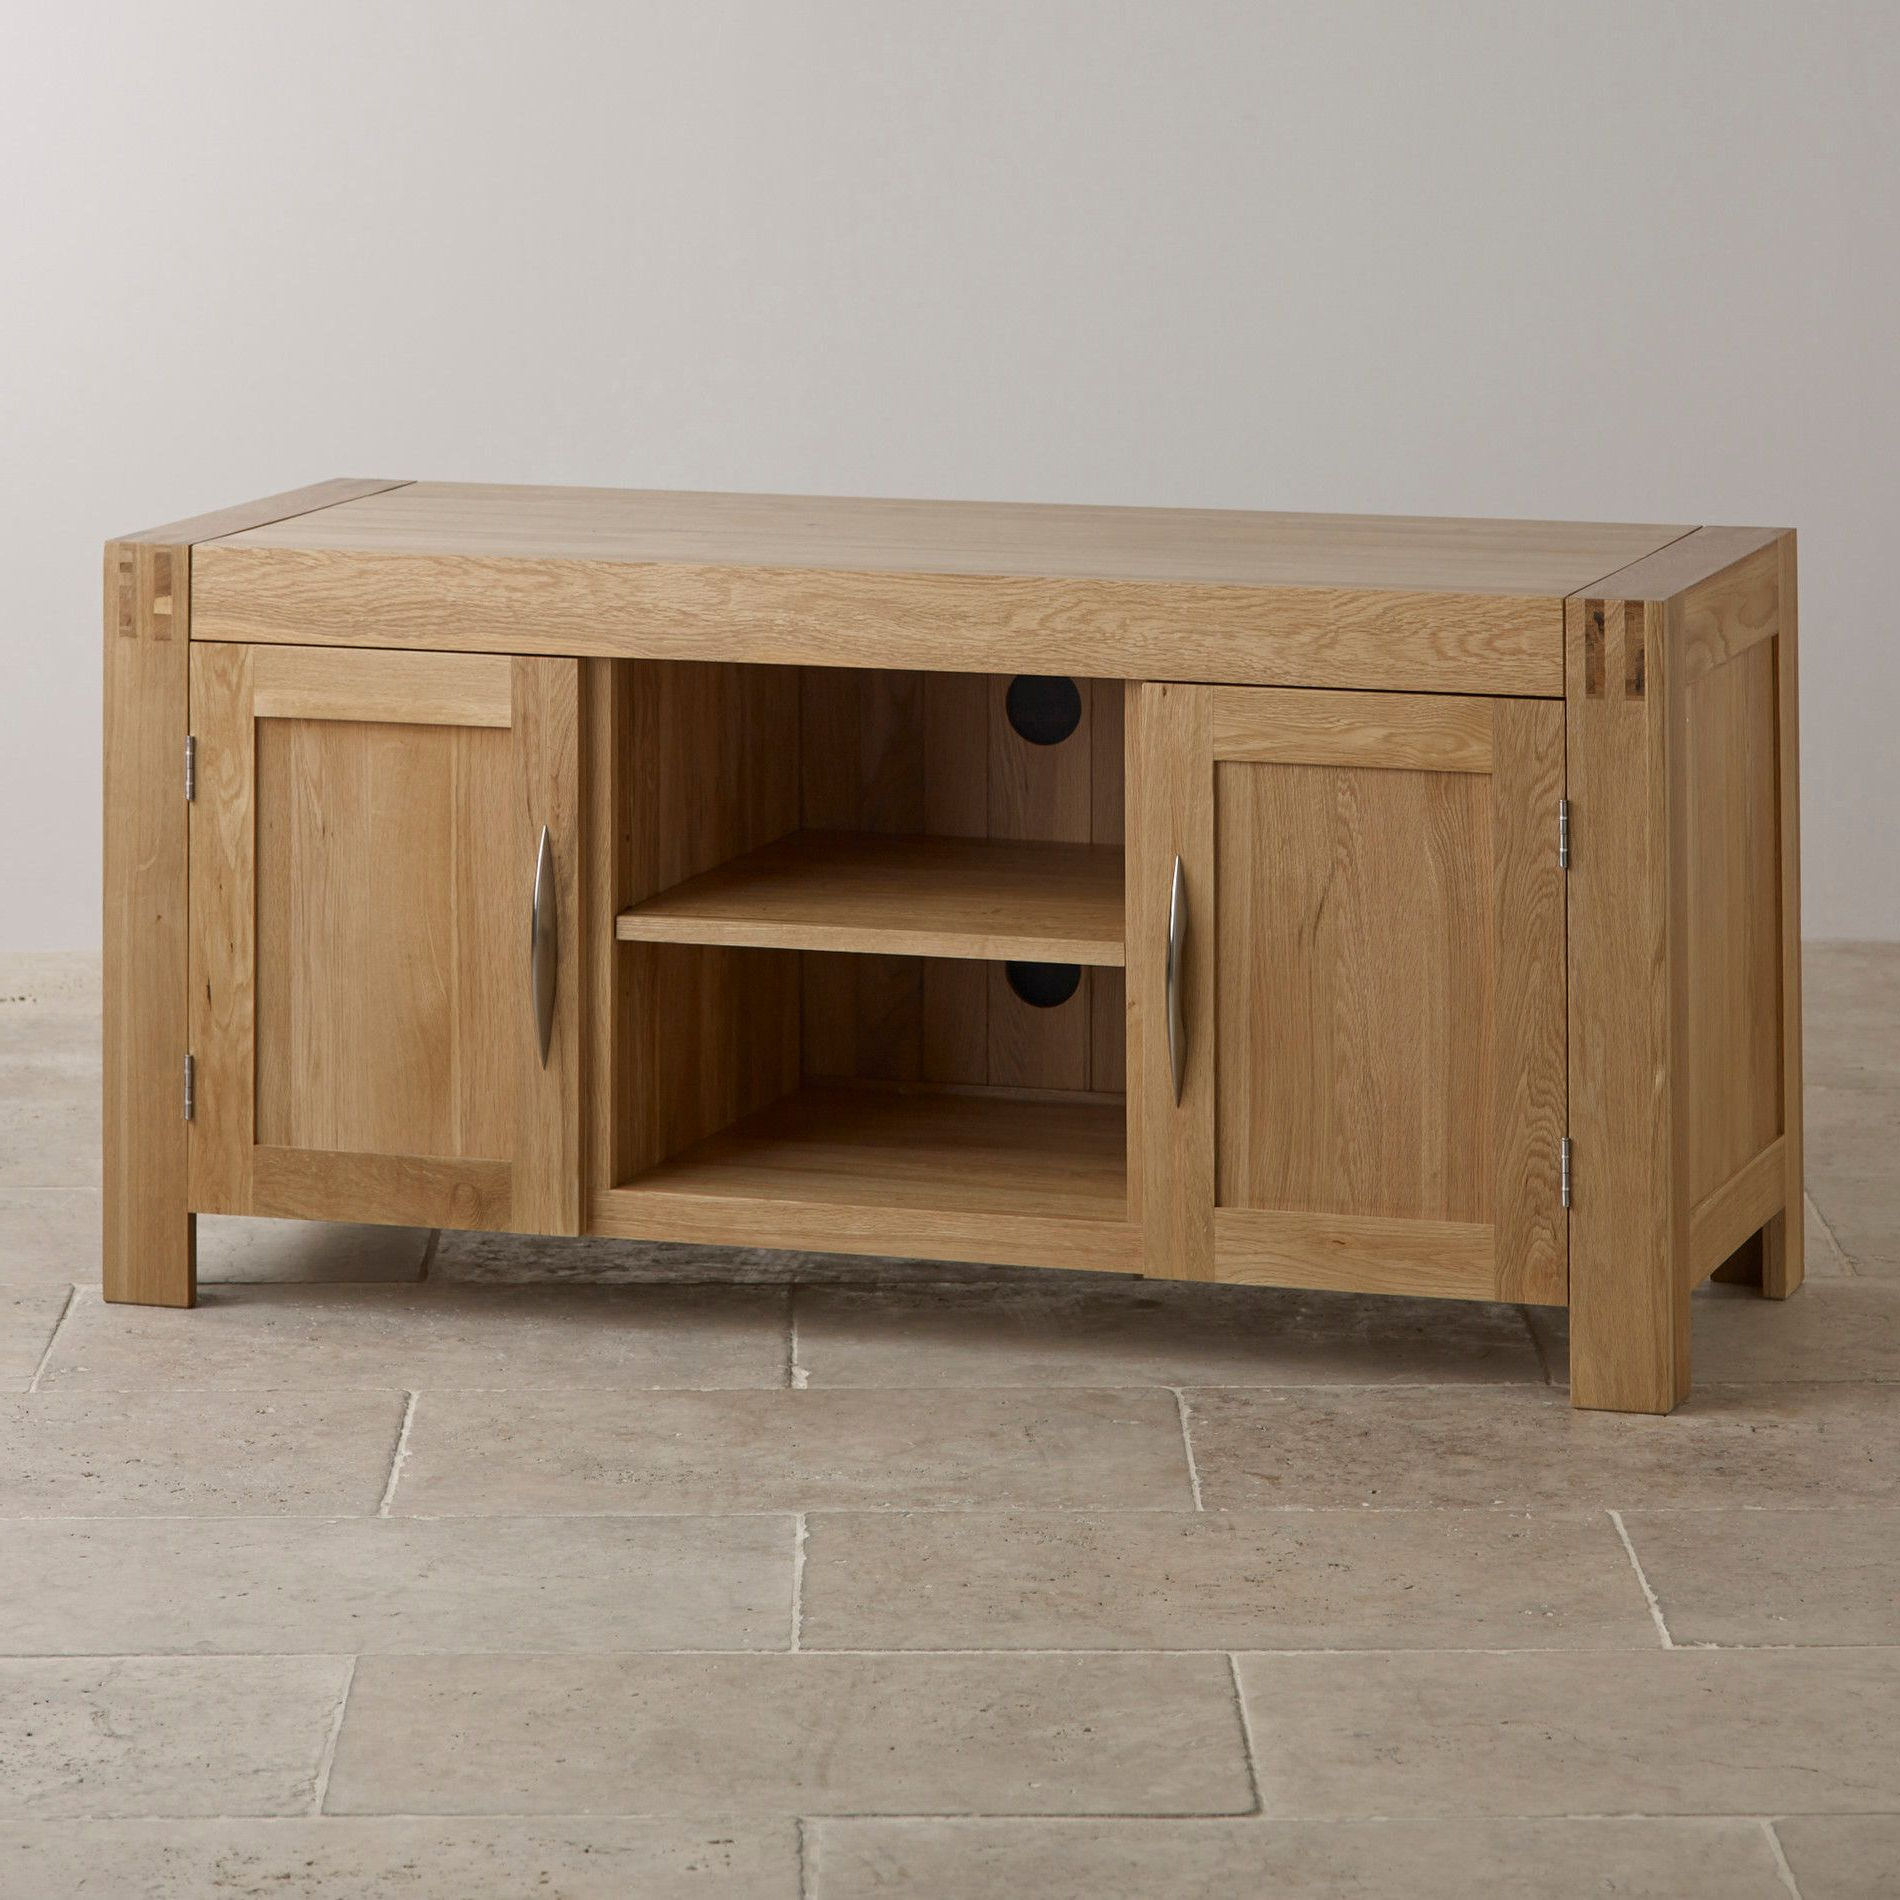 Newest Oak Widescreen Tv Units Intended For Alto Solid Oak Widescreen Tv Unit From The Alto Solid Oak Range (View 8 of 20)